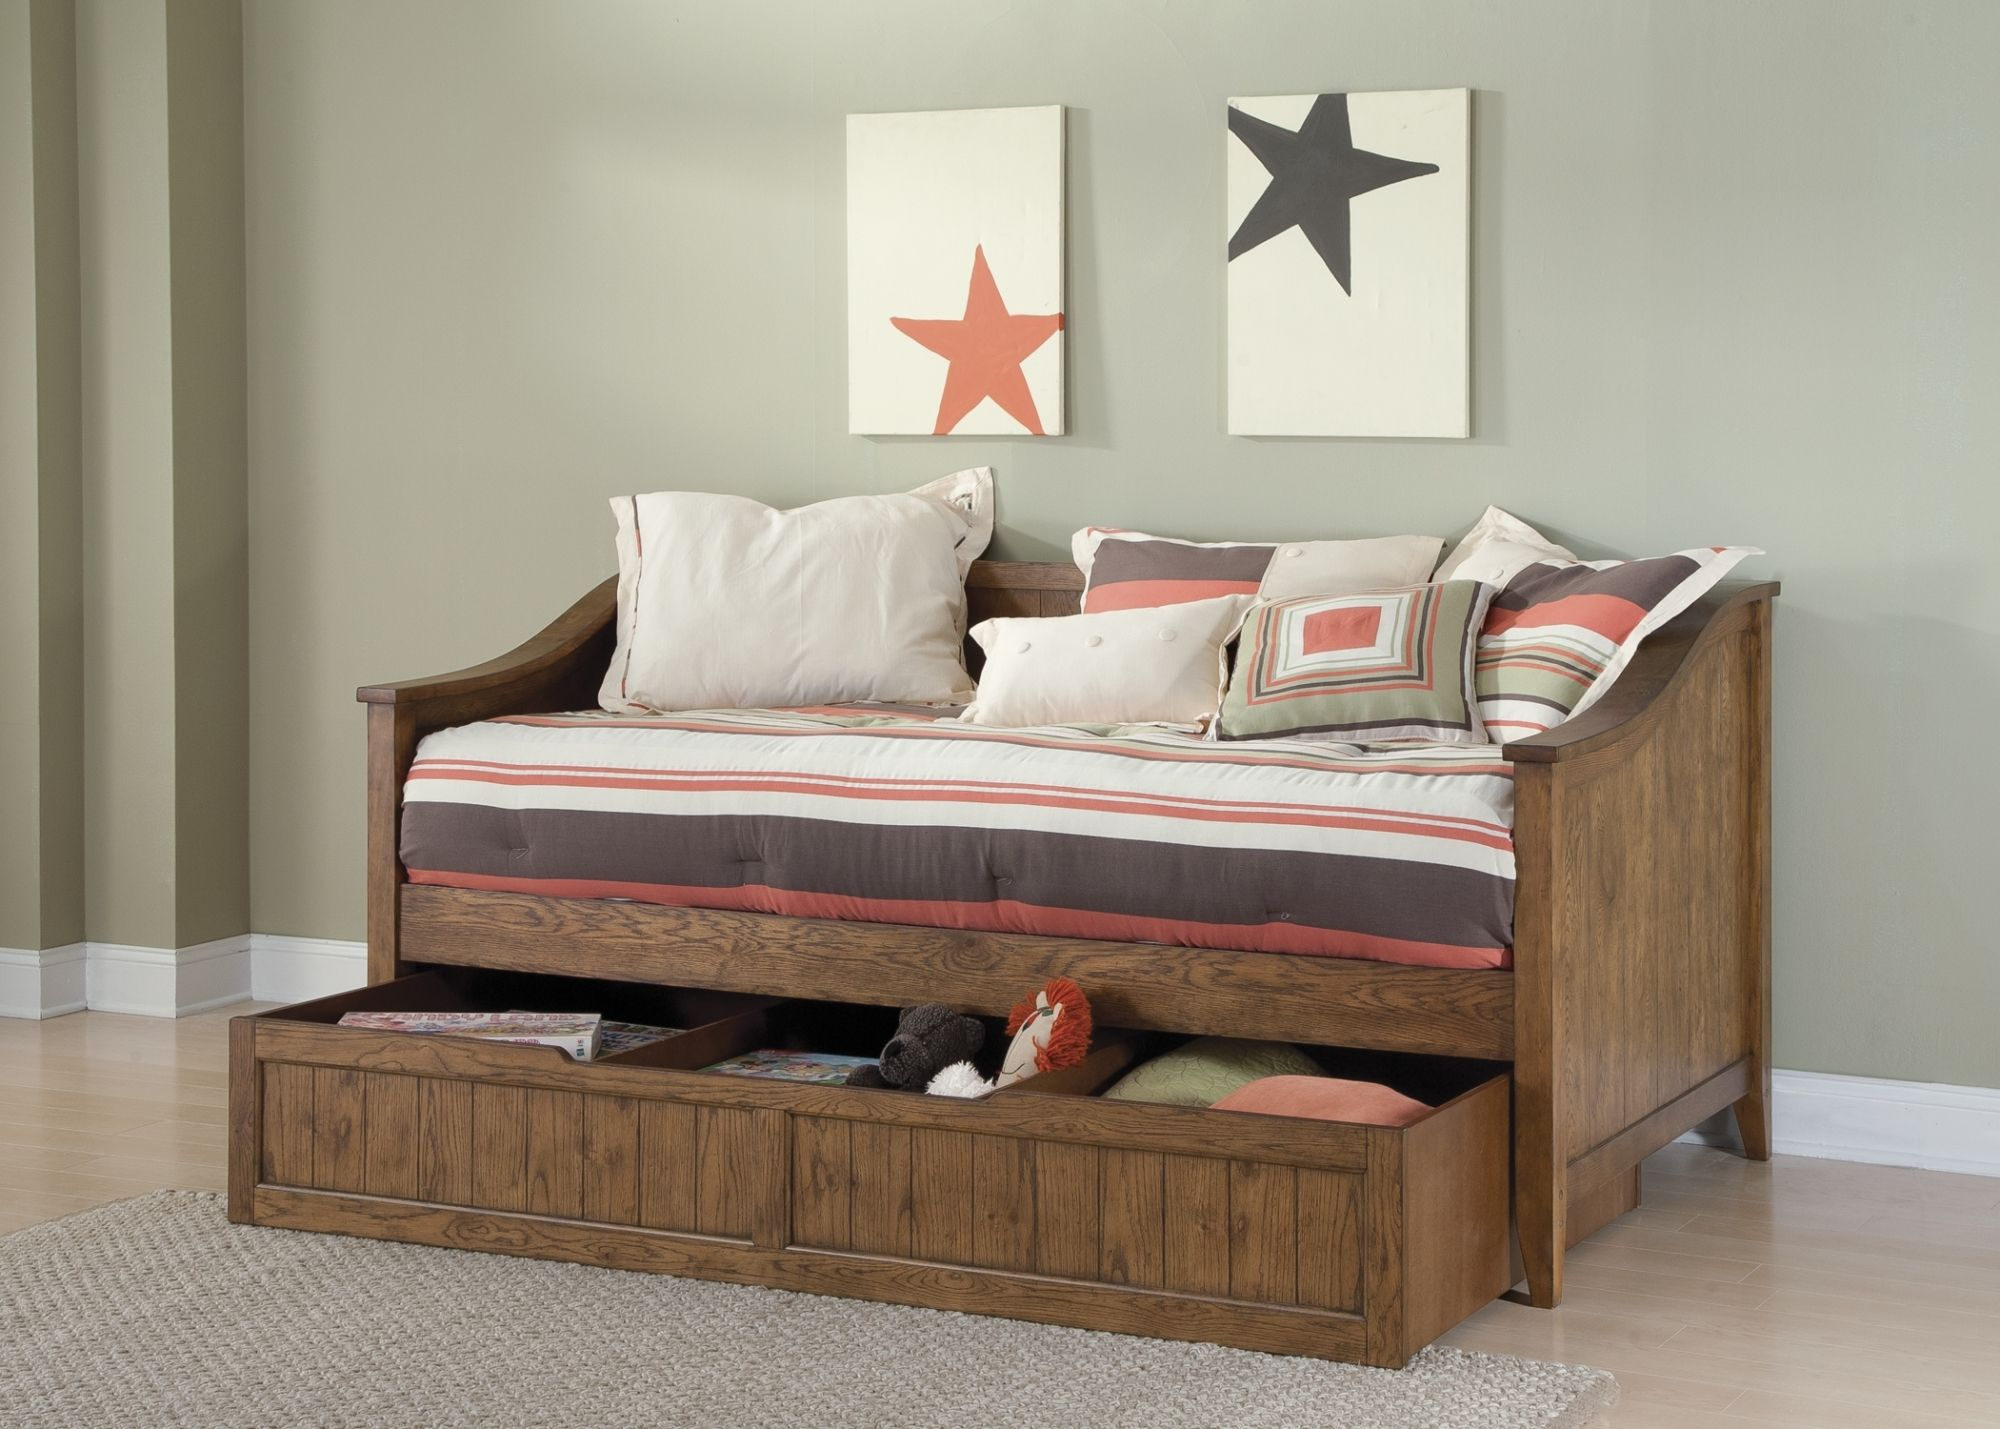 Wooden Daybeds With Drawers Wooden Daybeds With